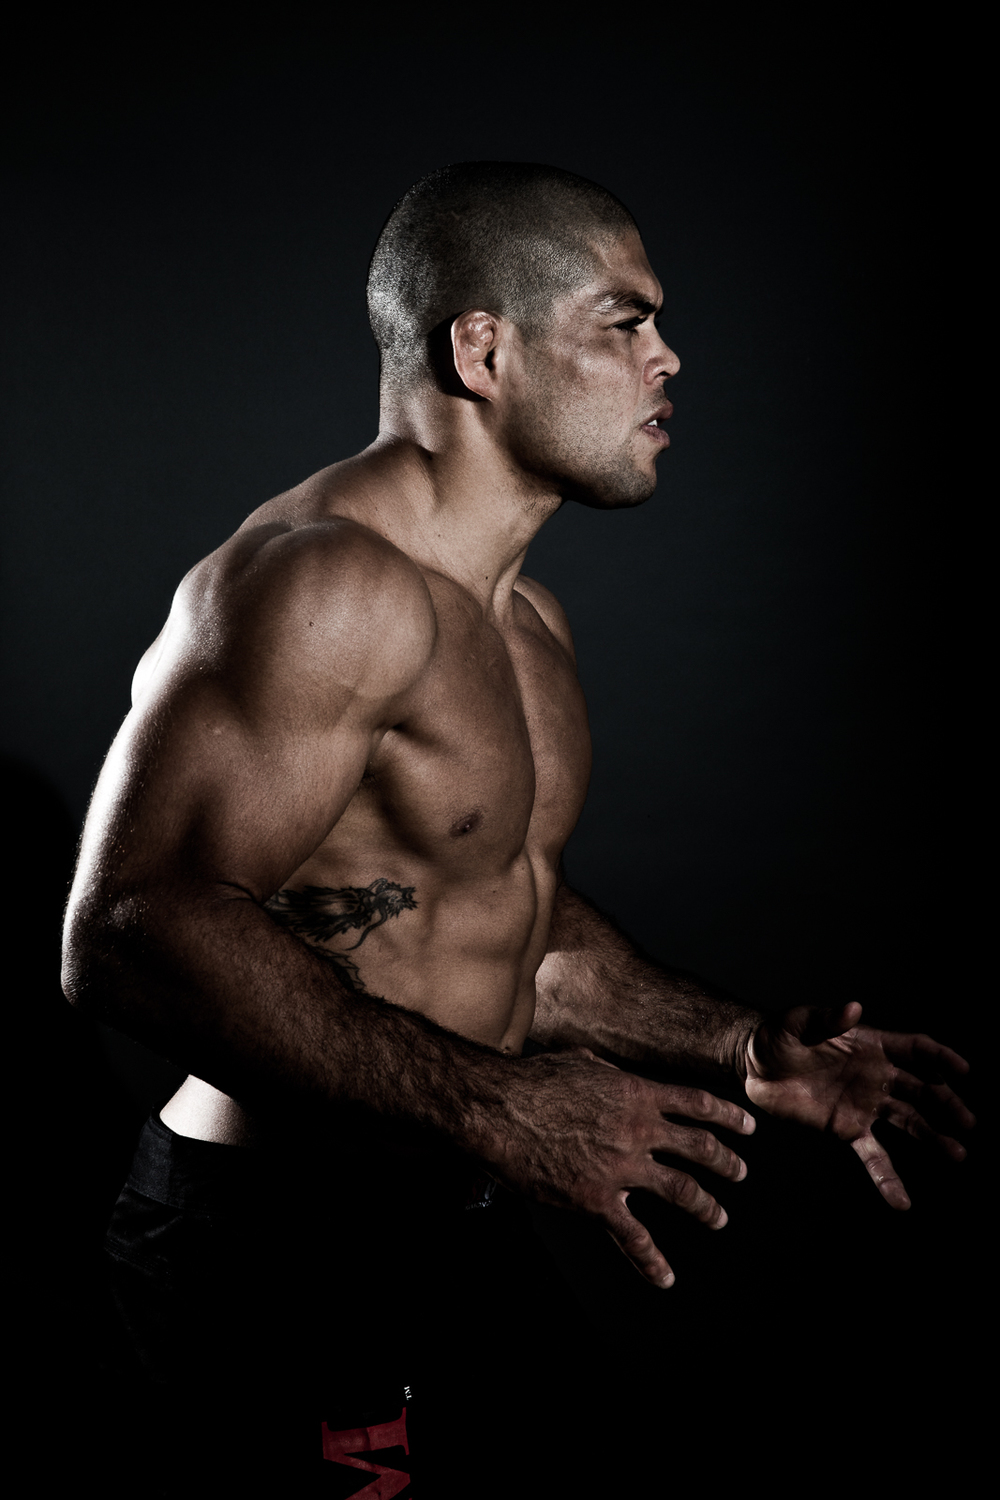 Andre Galvão Brazilian Jiu-Jitsu athlete and ADCC Champion for BJJ Style magazine. Photo by Flavio Scorsato